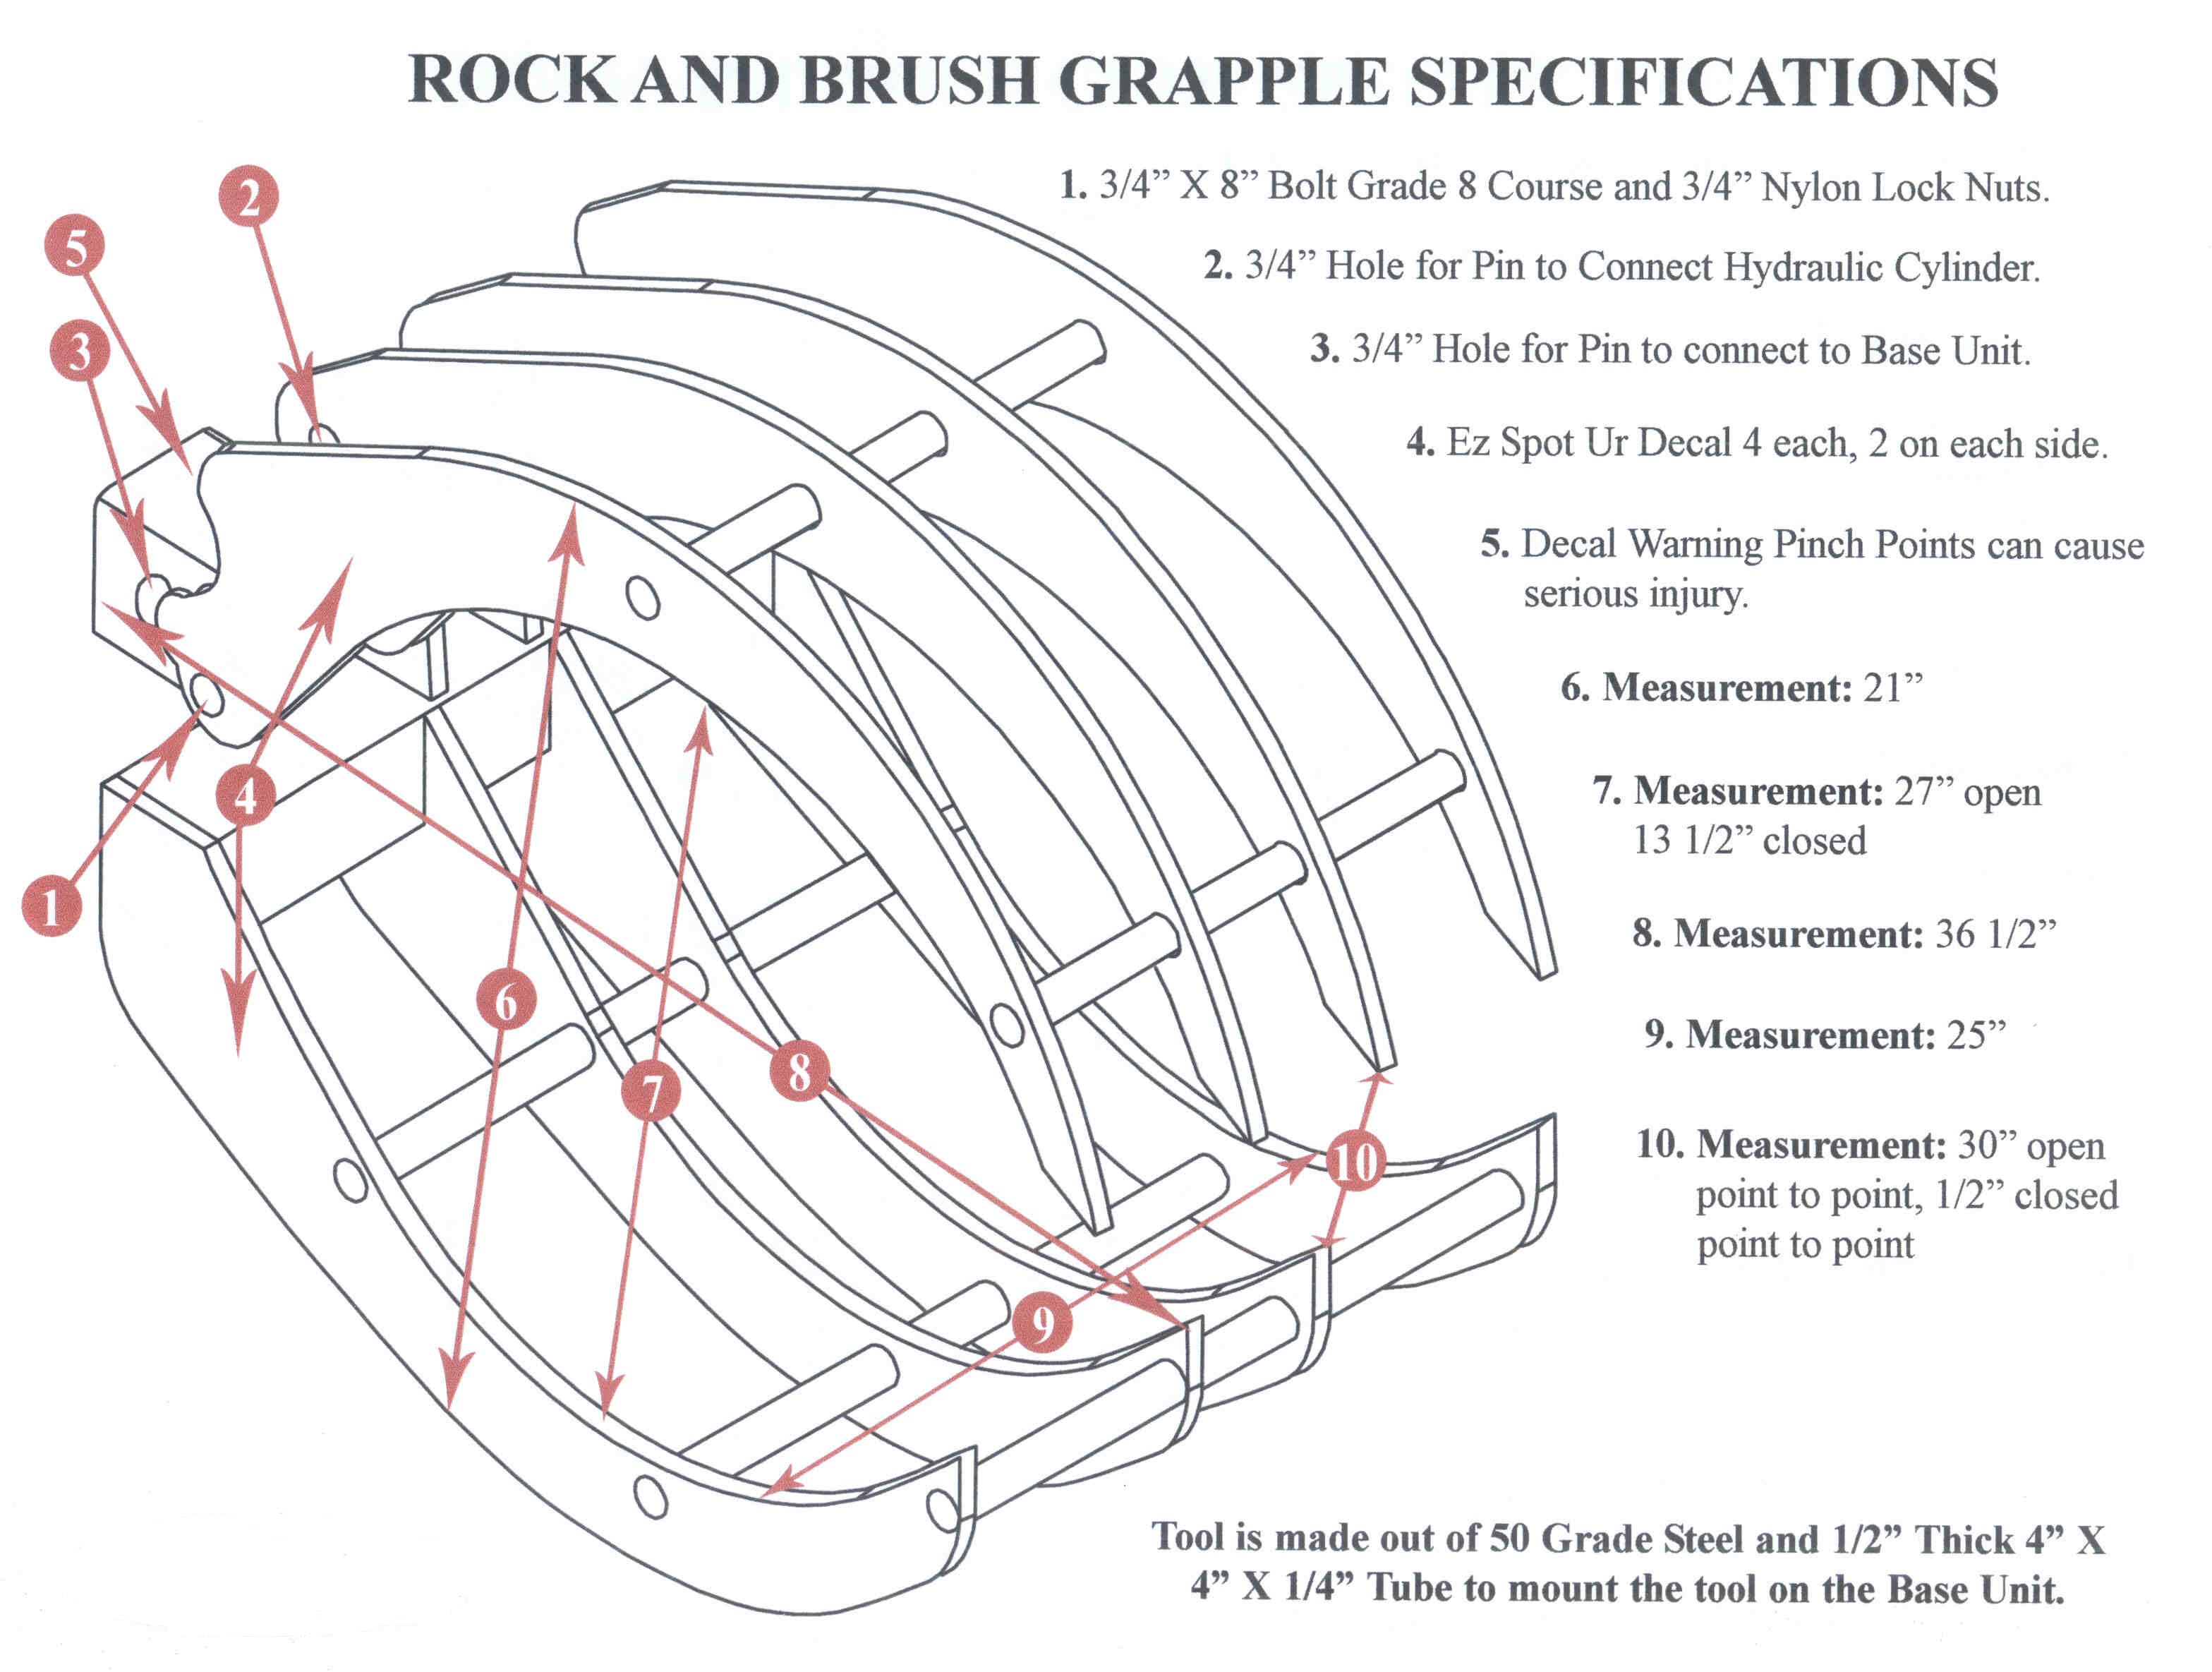 Specifications Rock And Brush Grapple